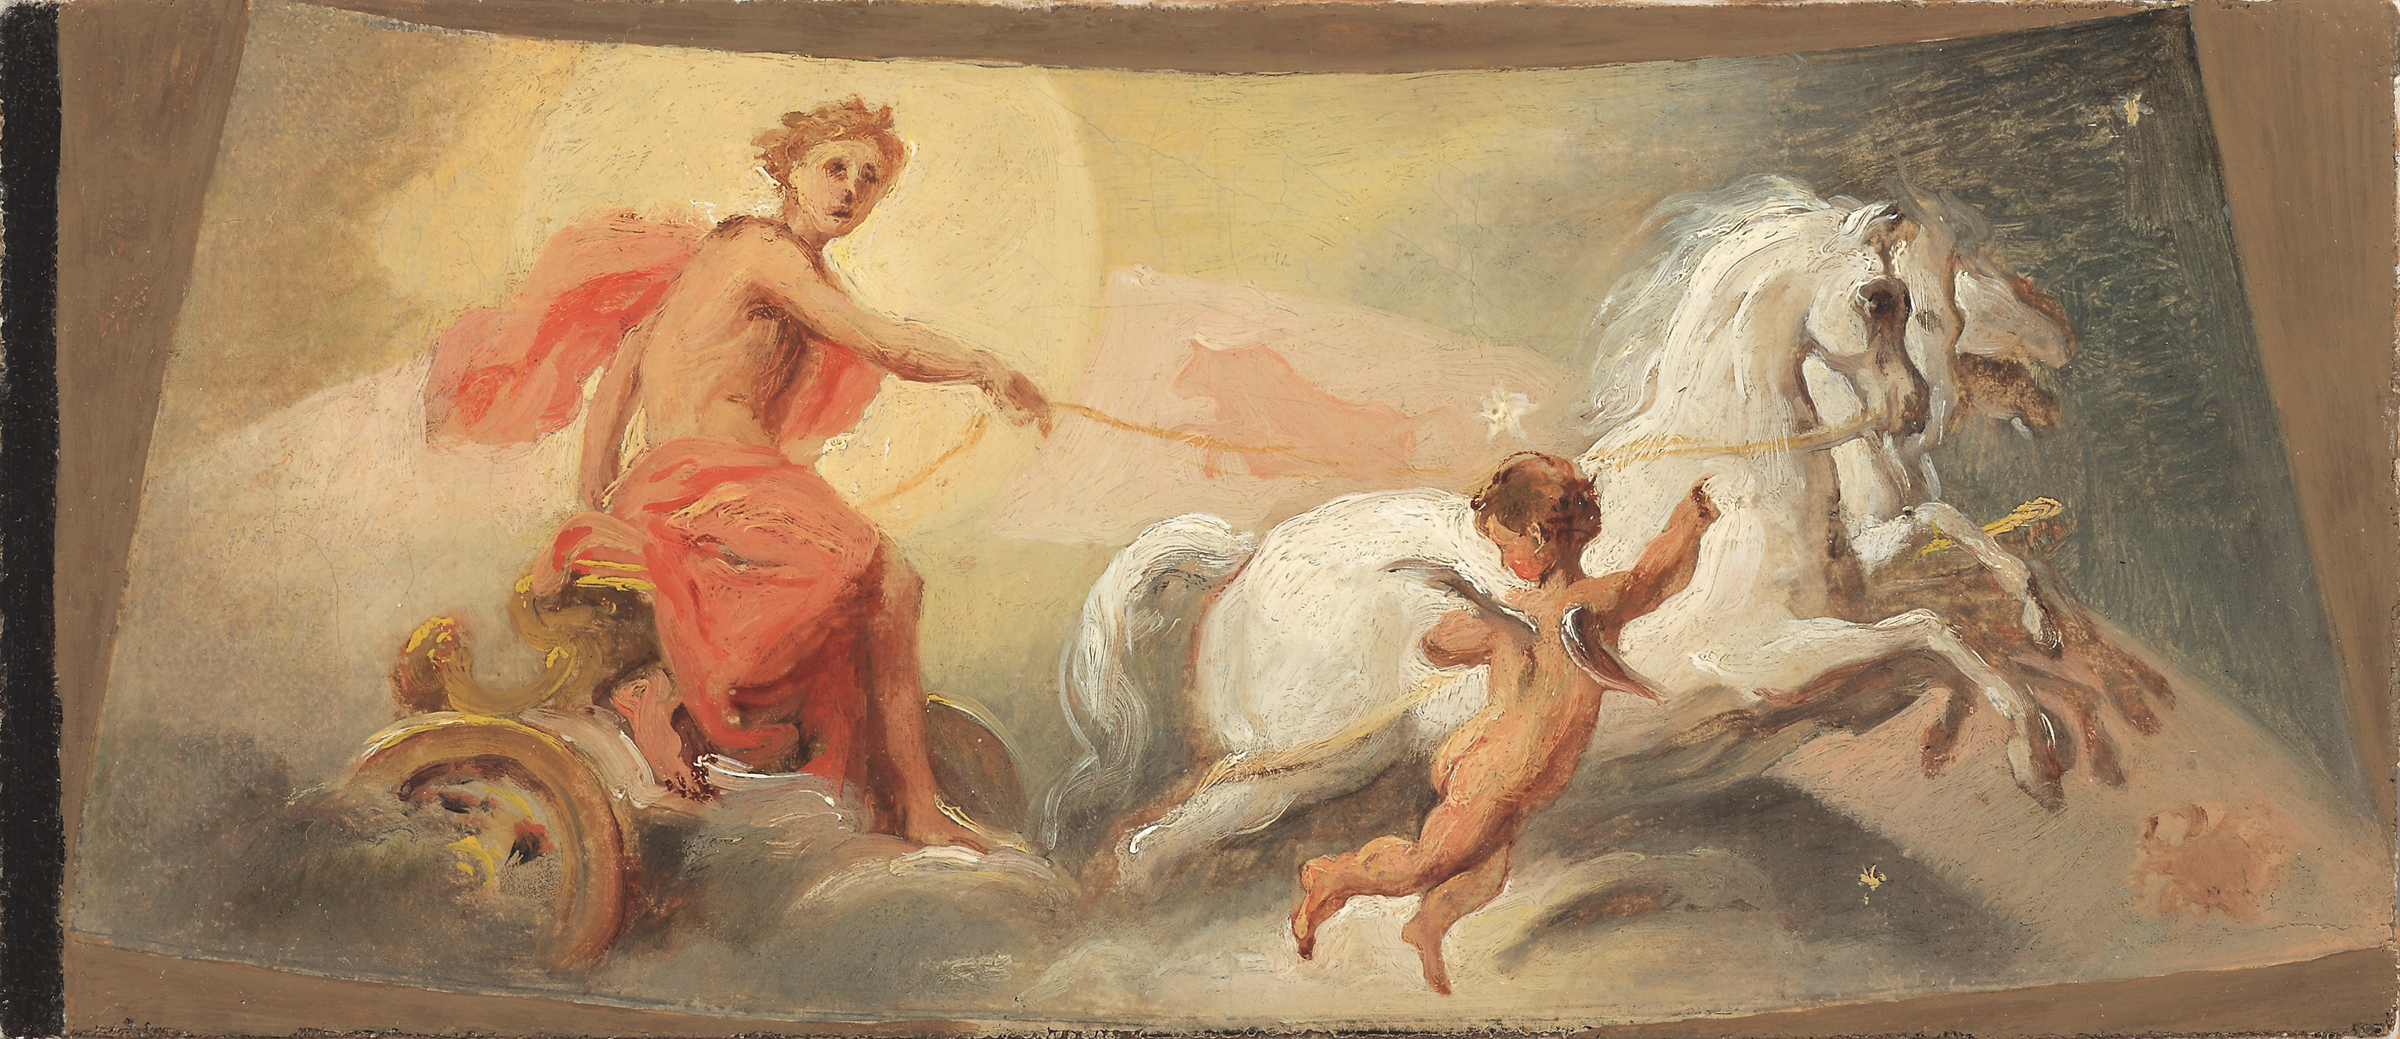 Circle of Jacopo Guarana, Apollo as God of the Sun